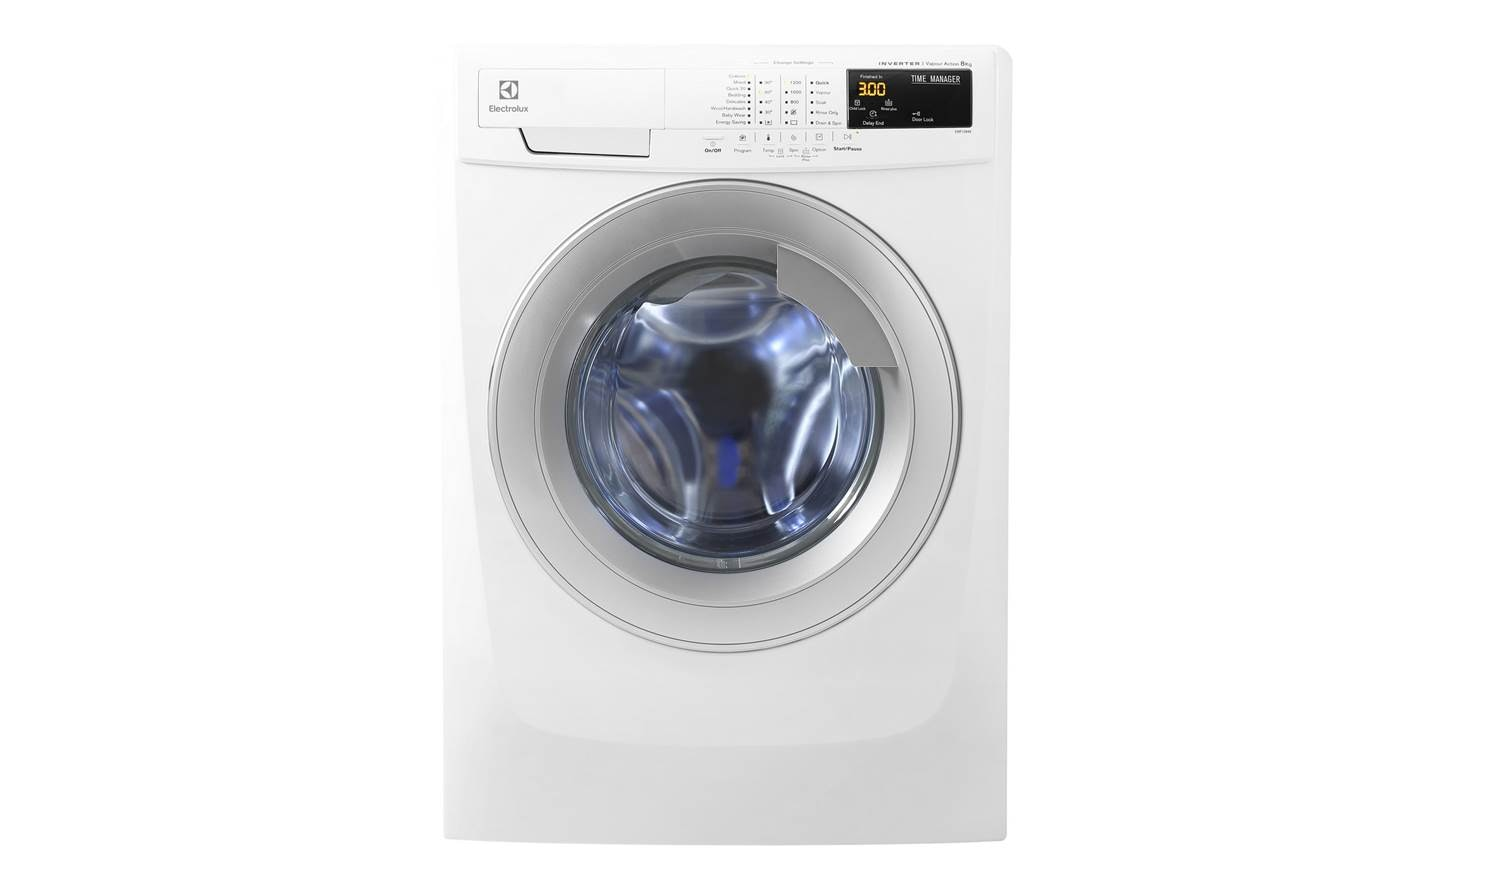 electrolux top load washer. electrolux ewf-12844 8kg front load washer top